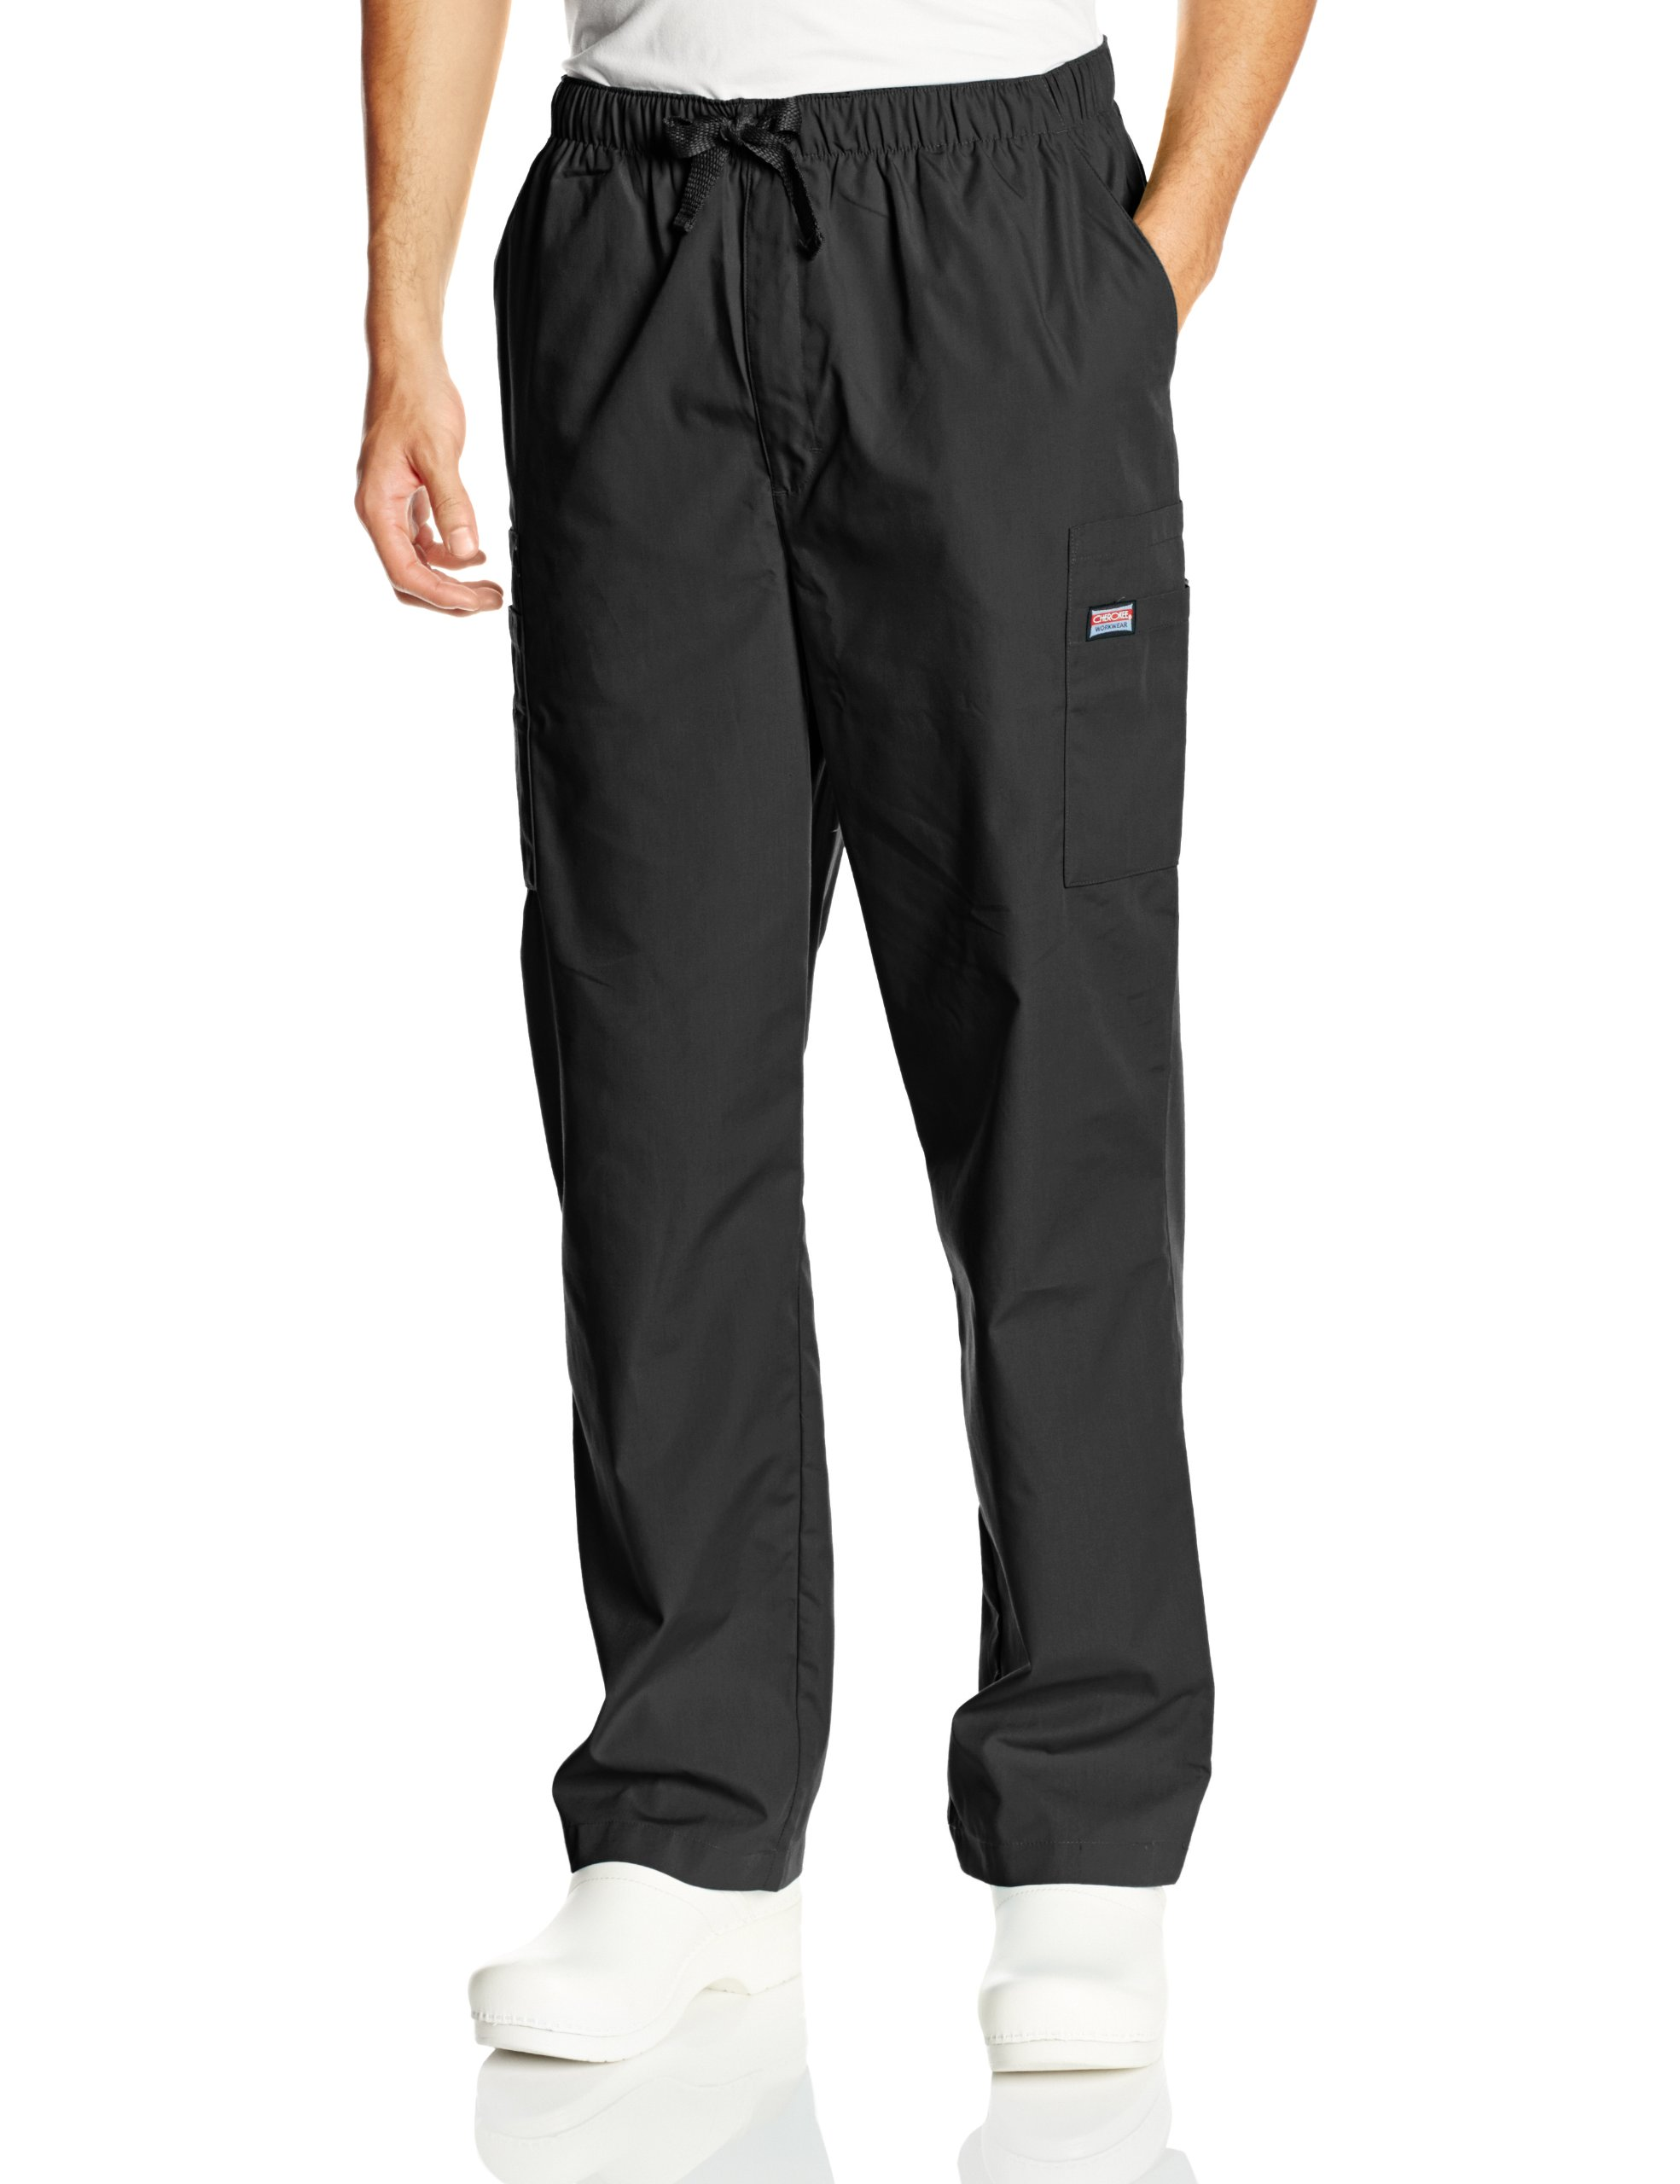 Cherokee Men's Big and Tall Originals Cargo Scrubs Pant, Black, XXX-Large by Cherokee